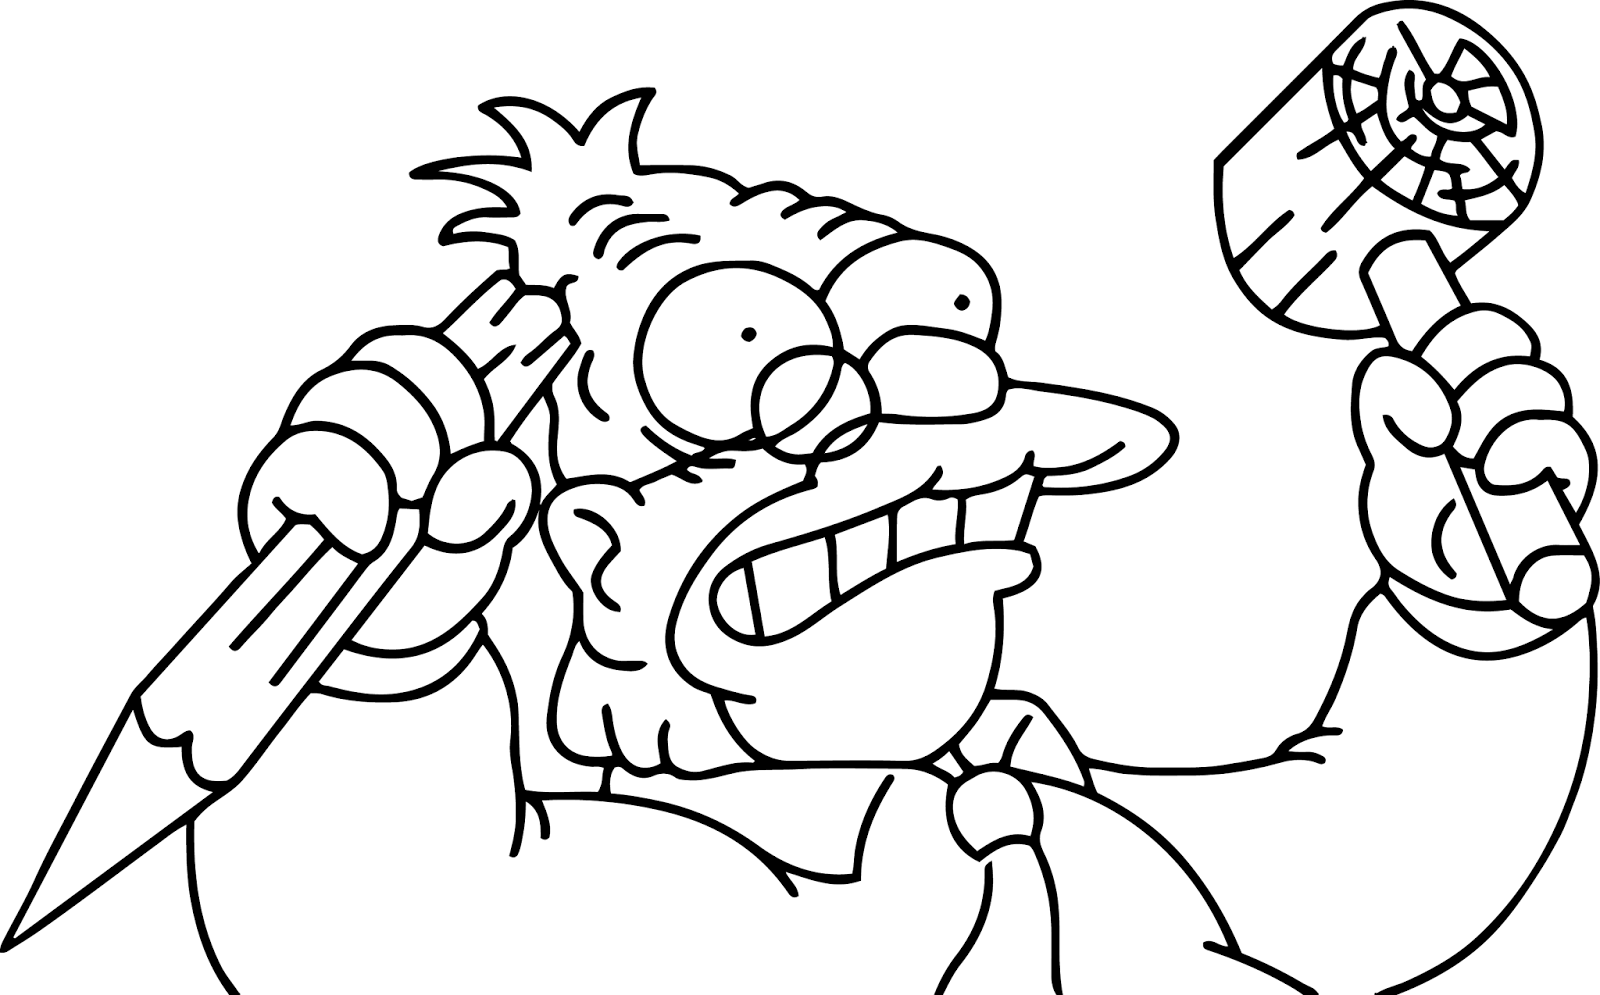 homer simpson halloween coloring pages - photo#20